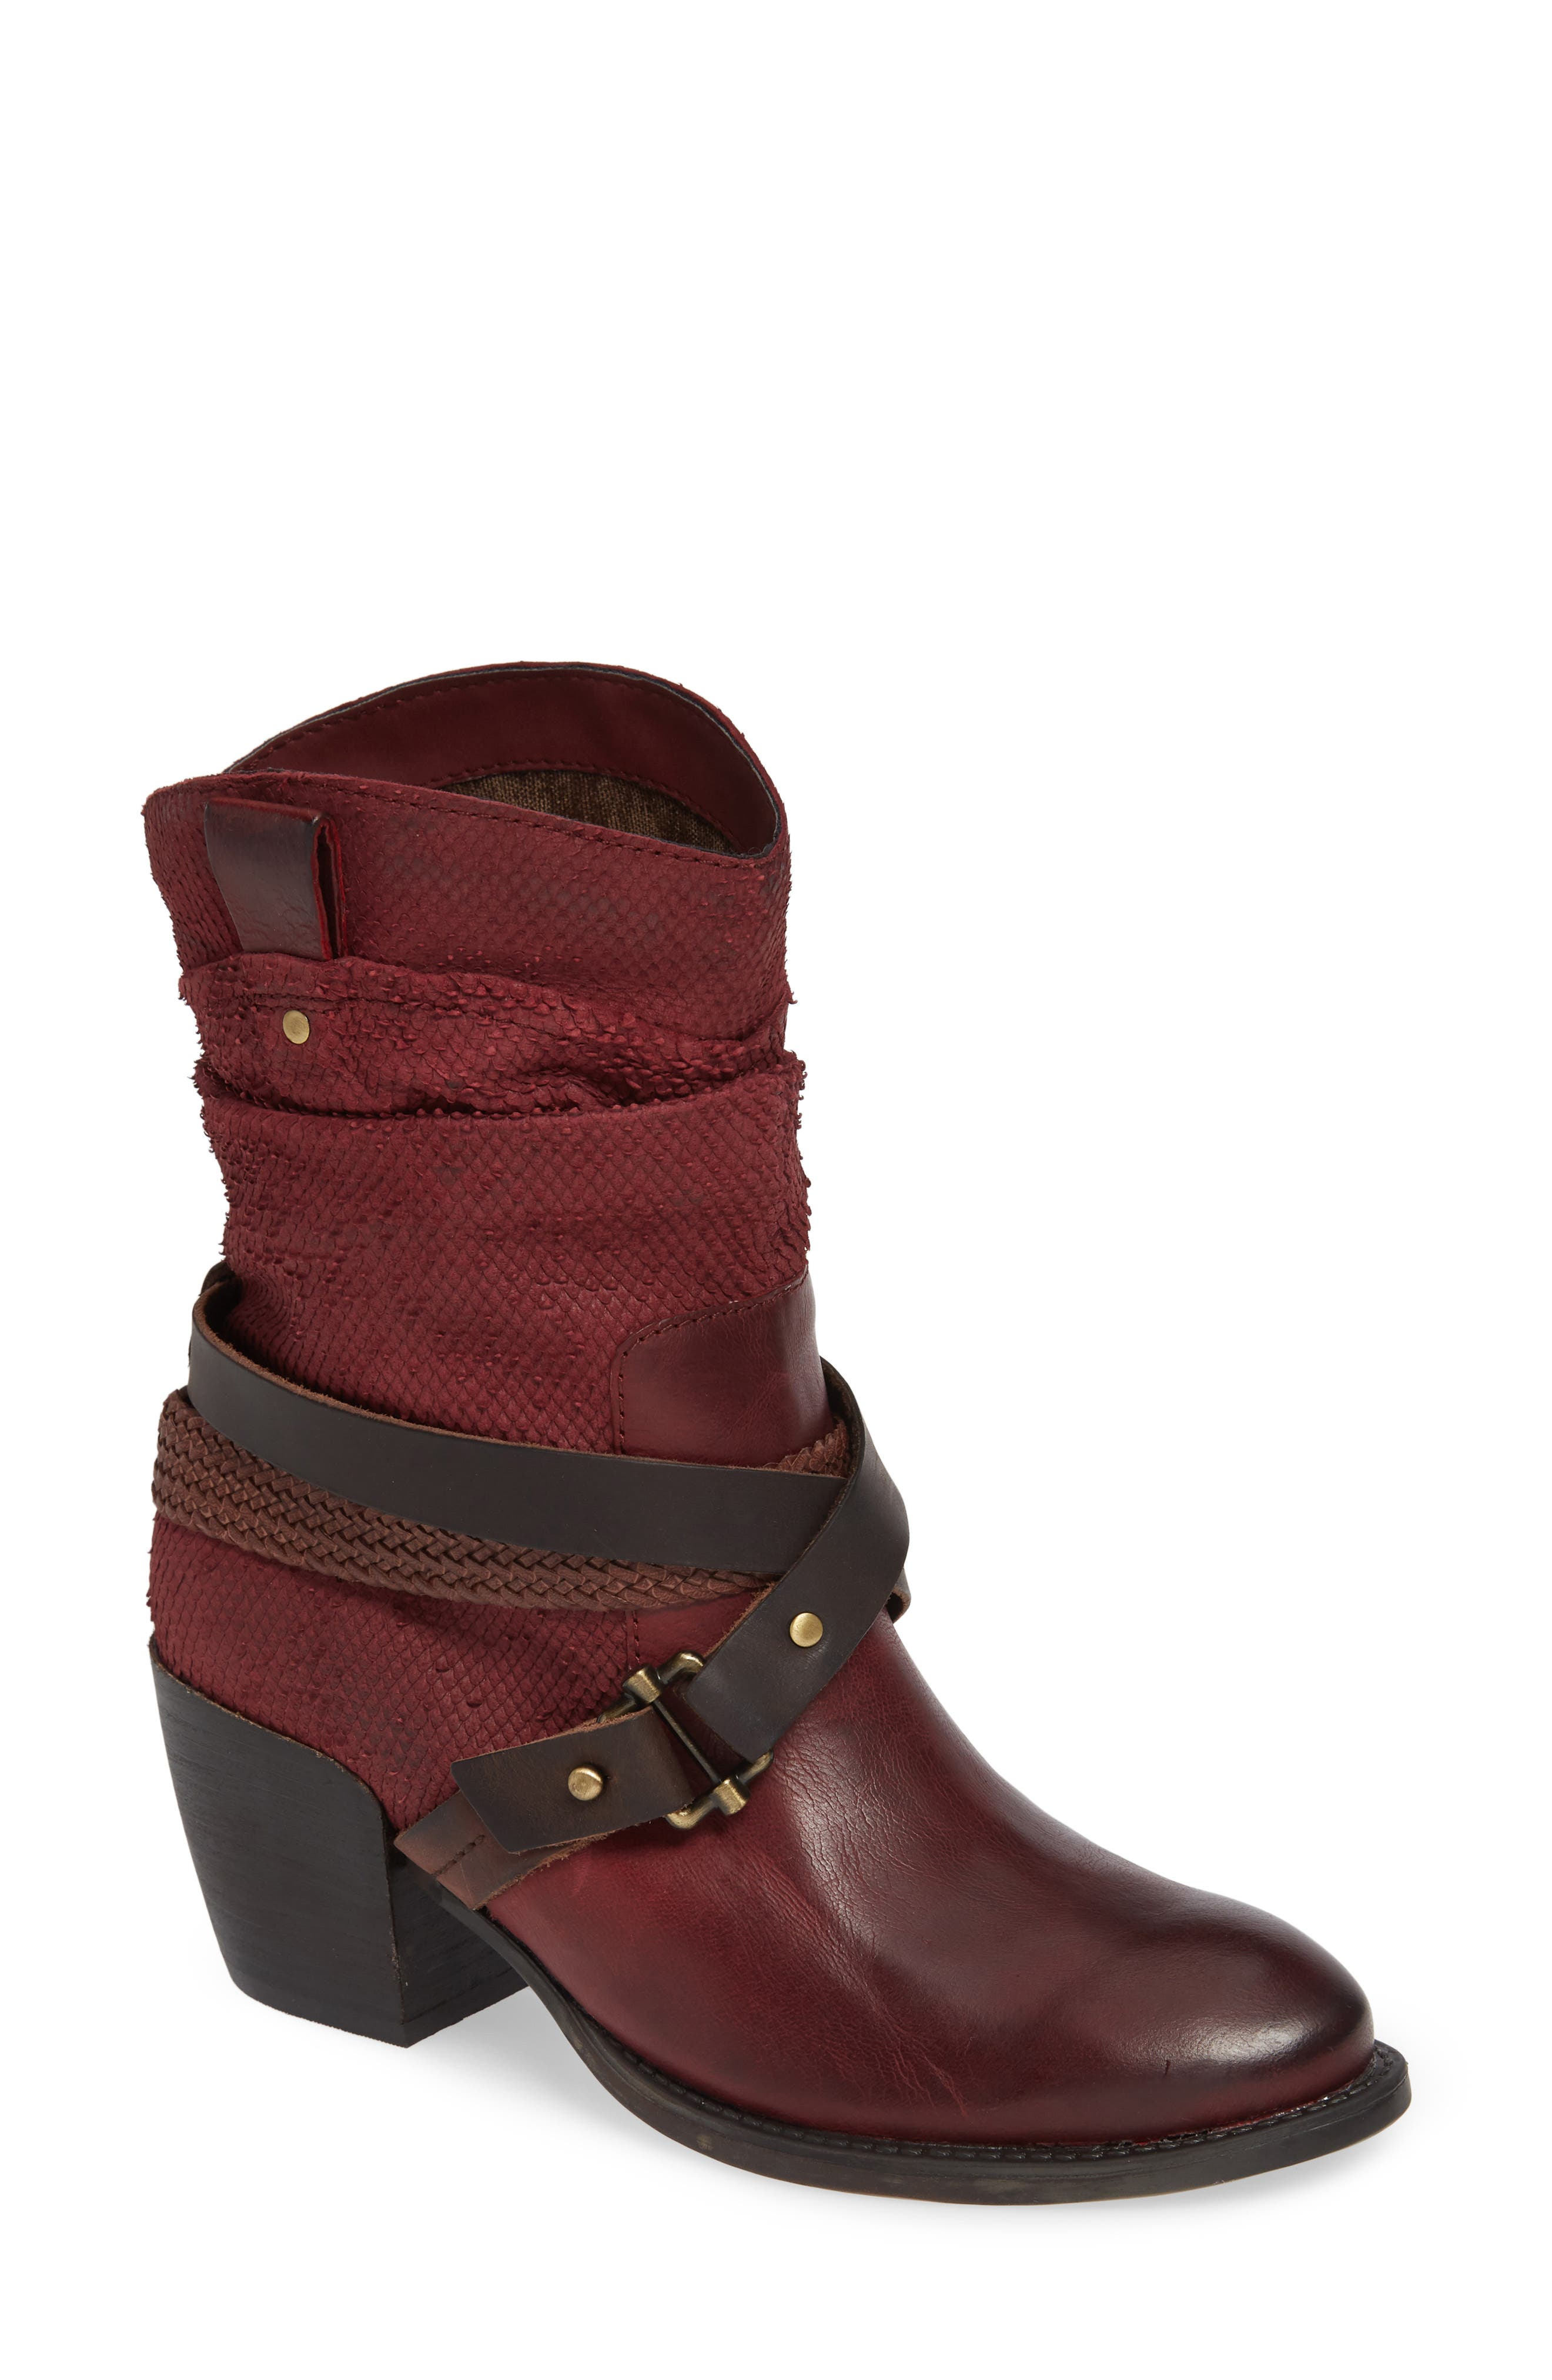 Otbt Hay Ride Bootie- Red